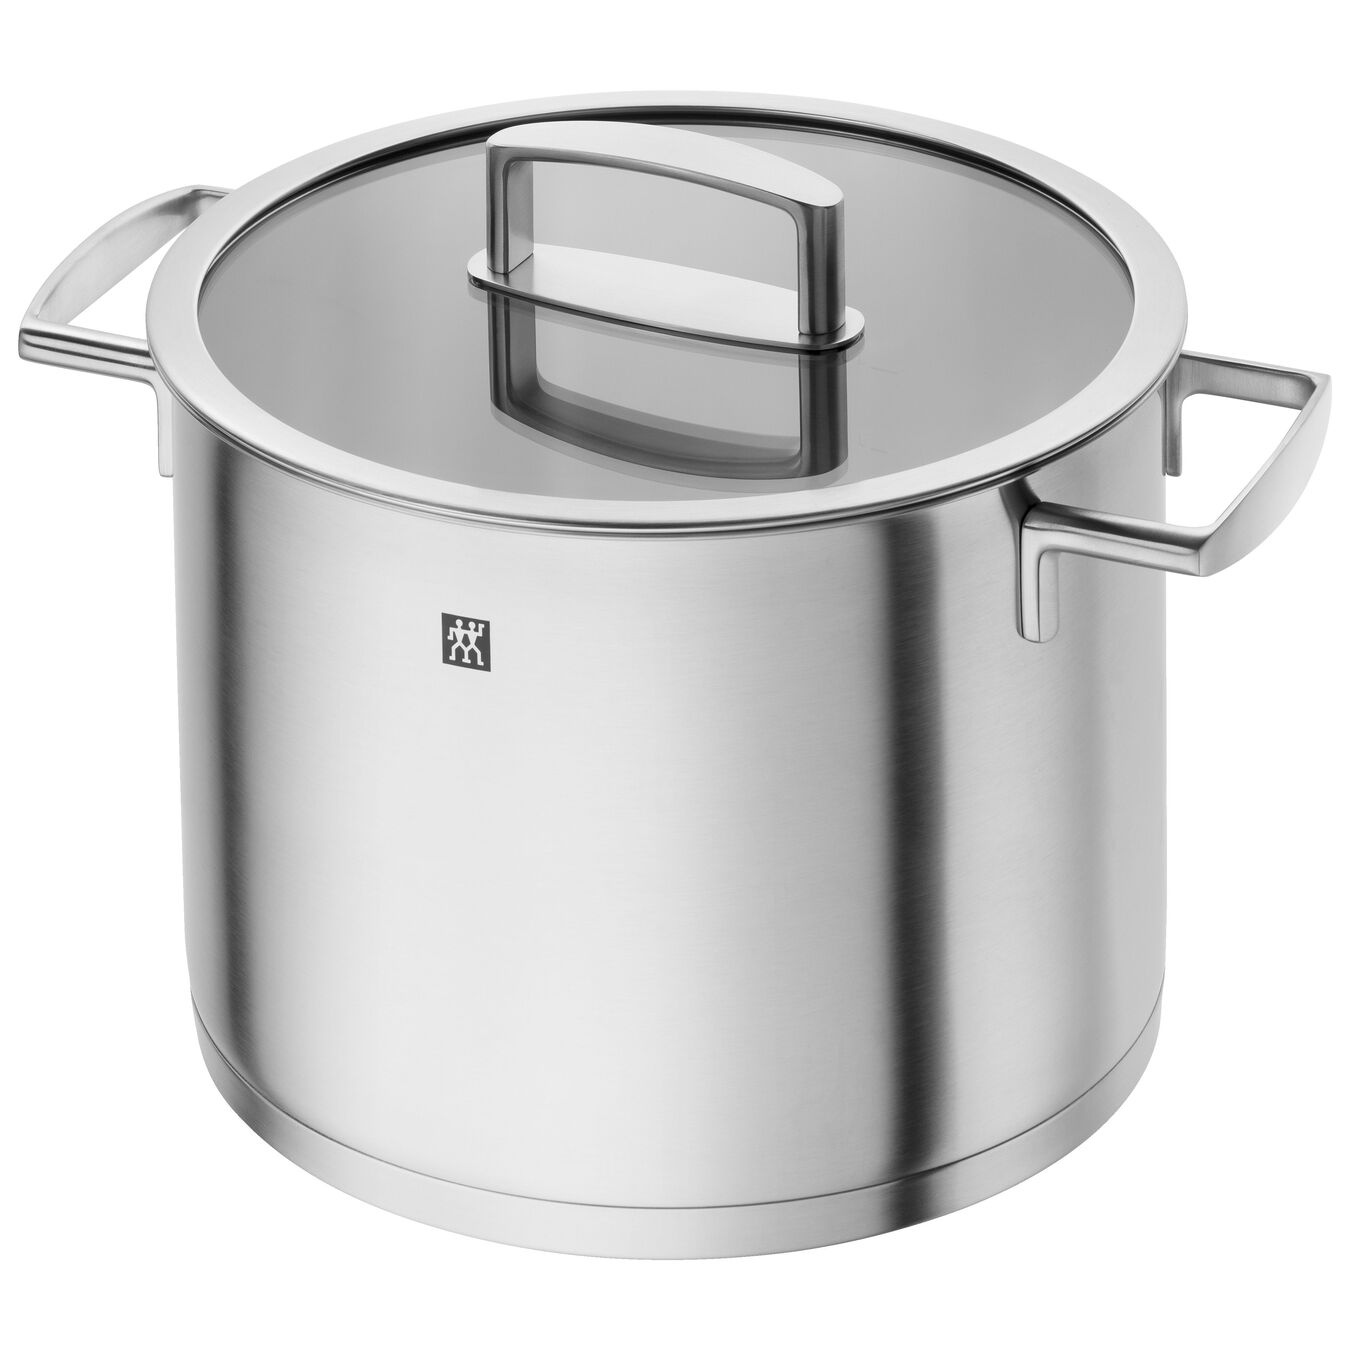 8 l 18/10 Stainless Steel stock pot with glass lid,,large 1